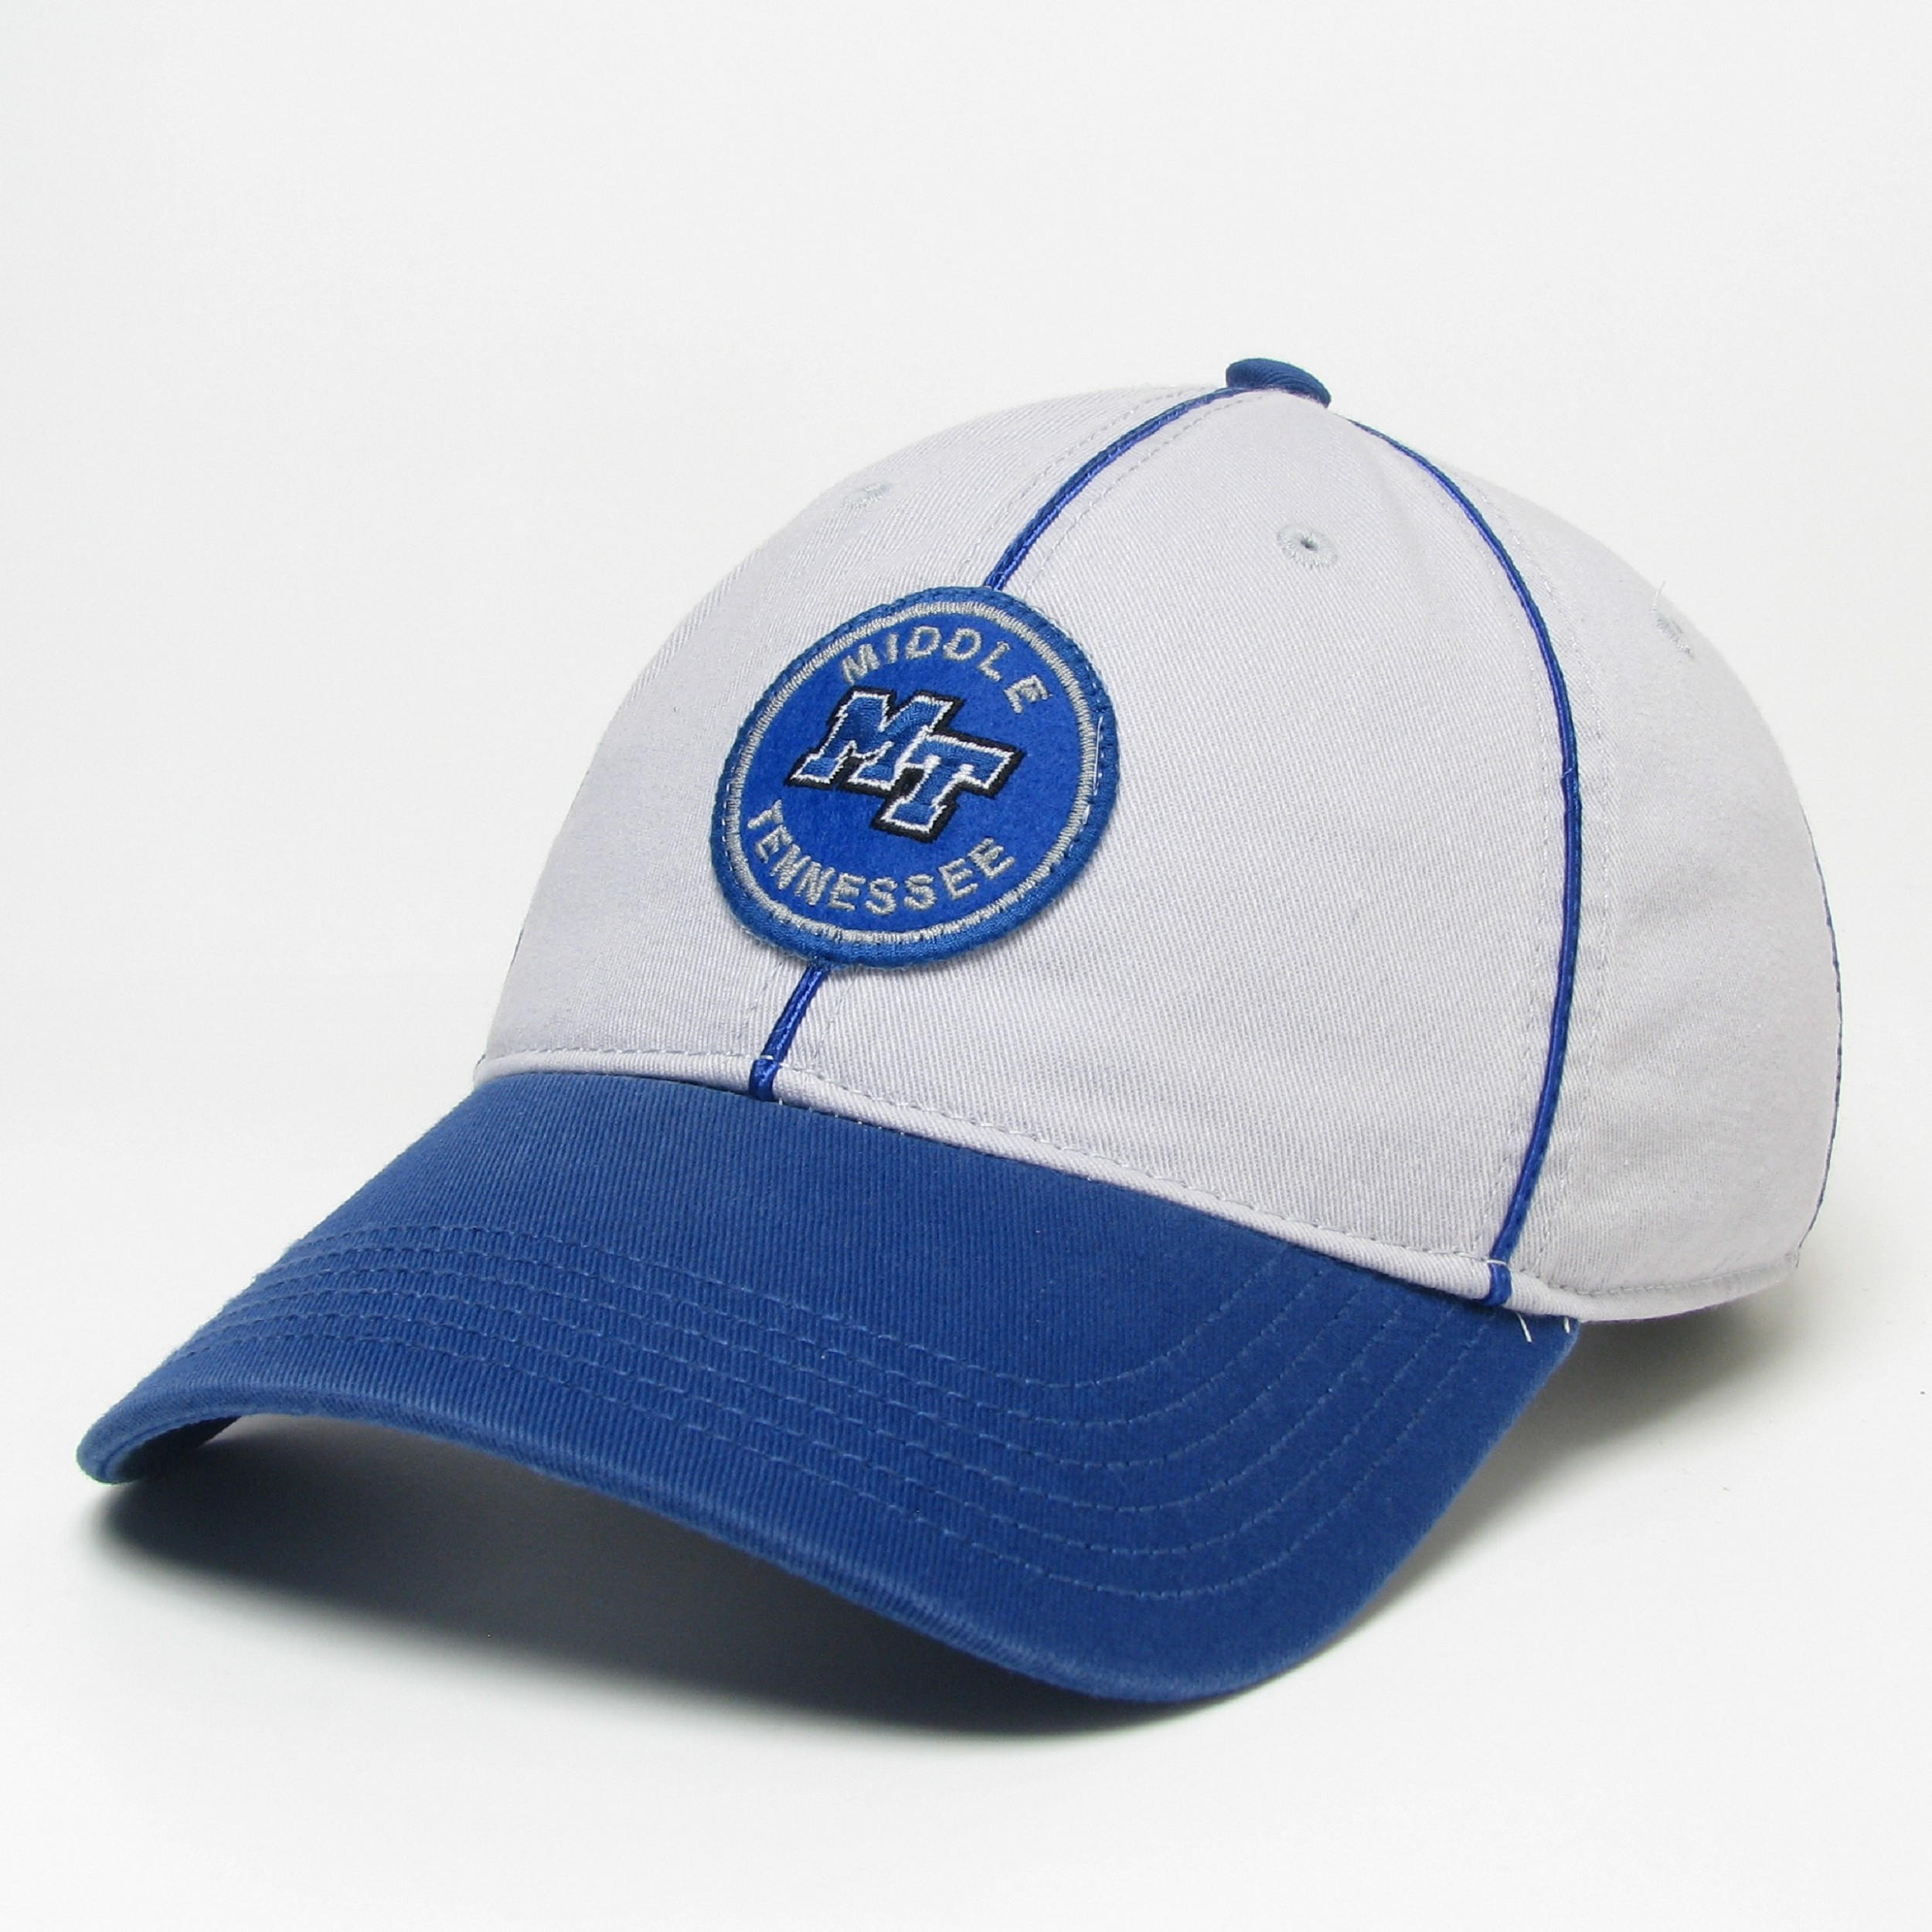 Middle Tennessee Hilltop Relaxed Twill Hat